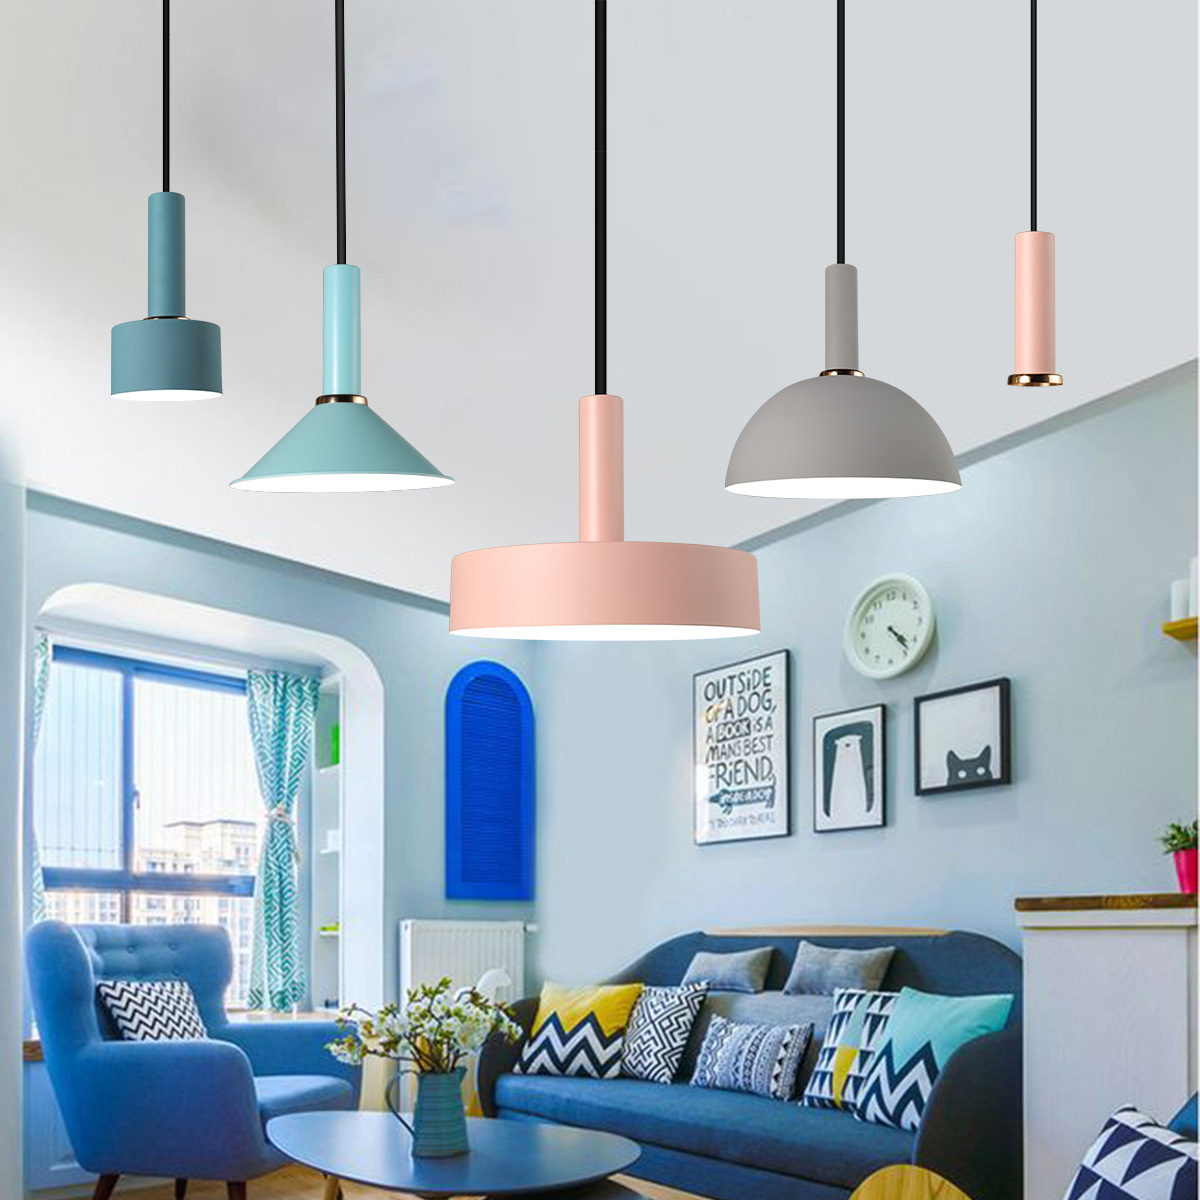 Kitchen Lighting Fixture Sets: Nordic Pendant Ceiling Light Modern Kitchen Fixture Lamp